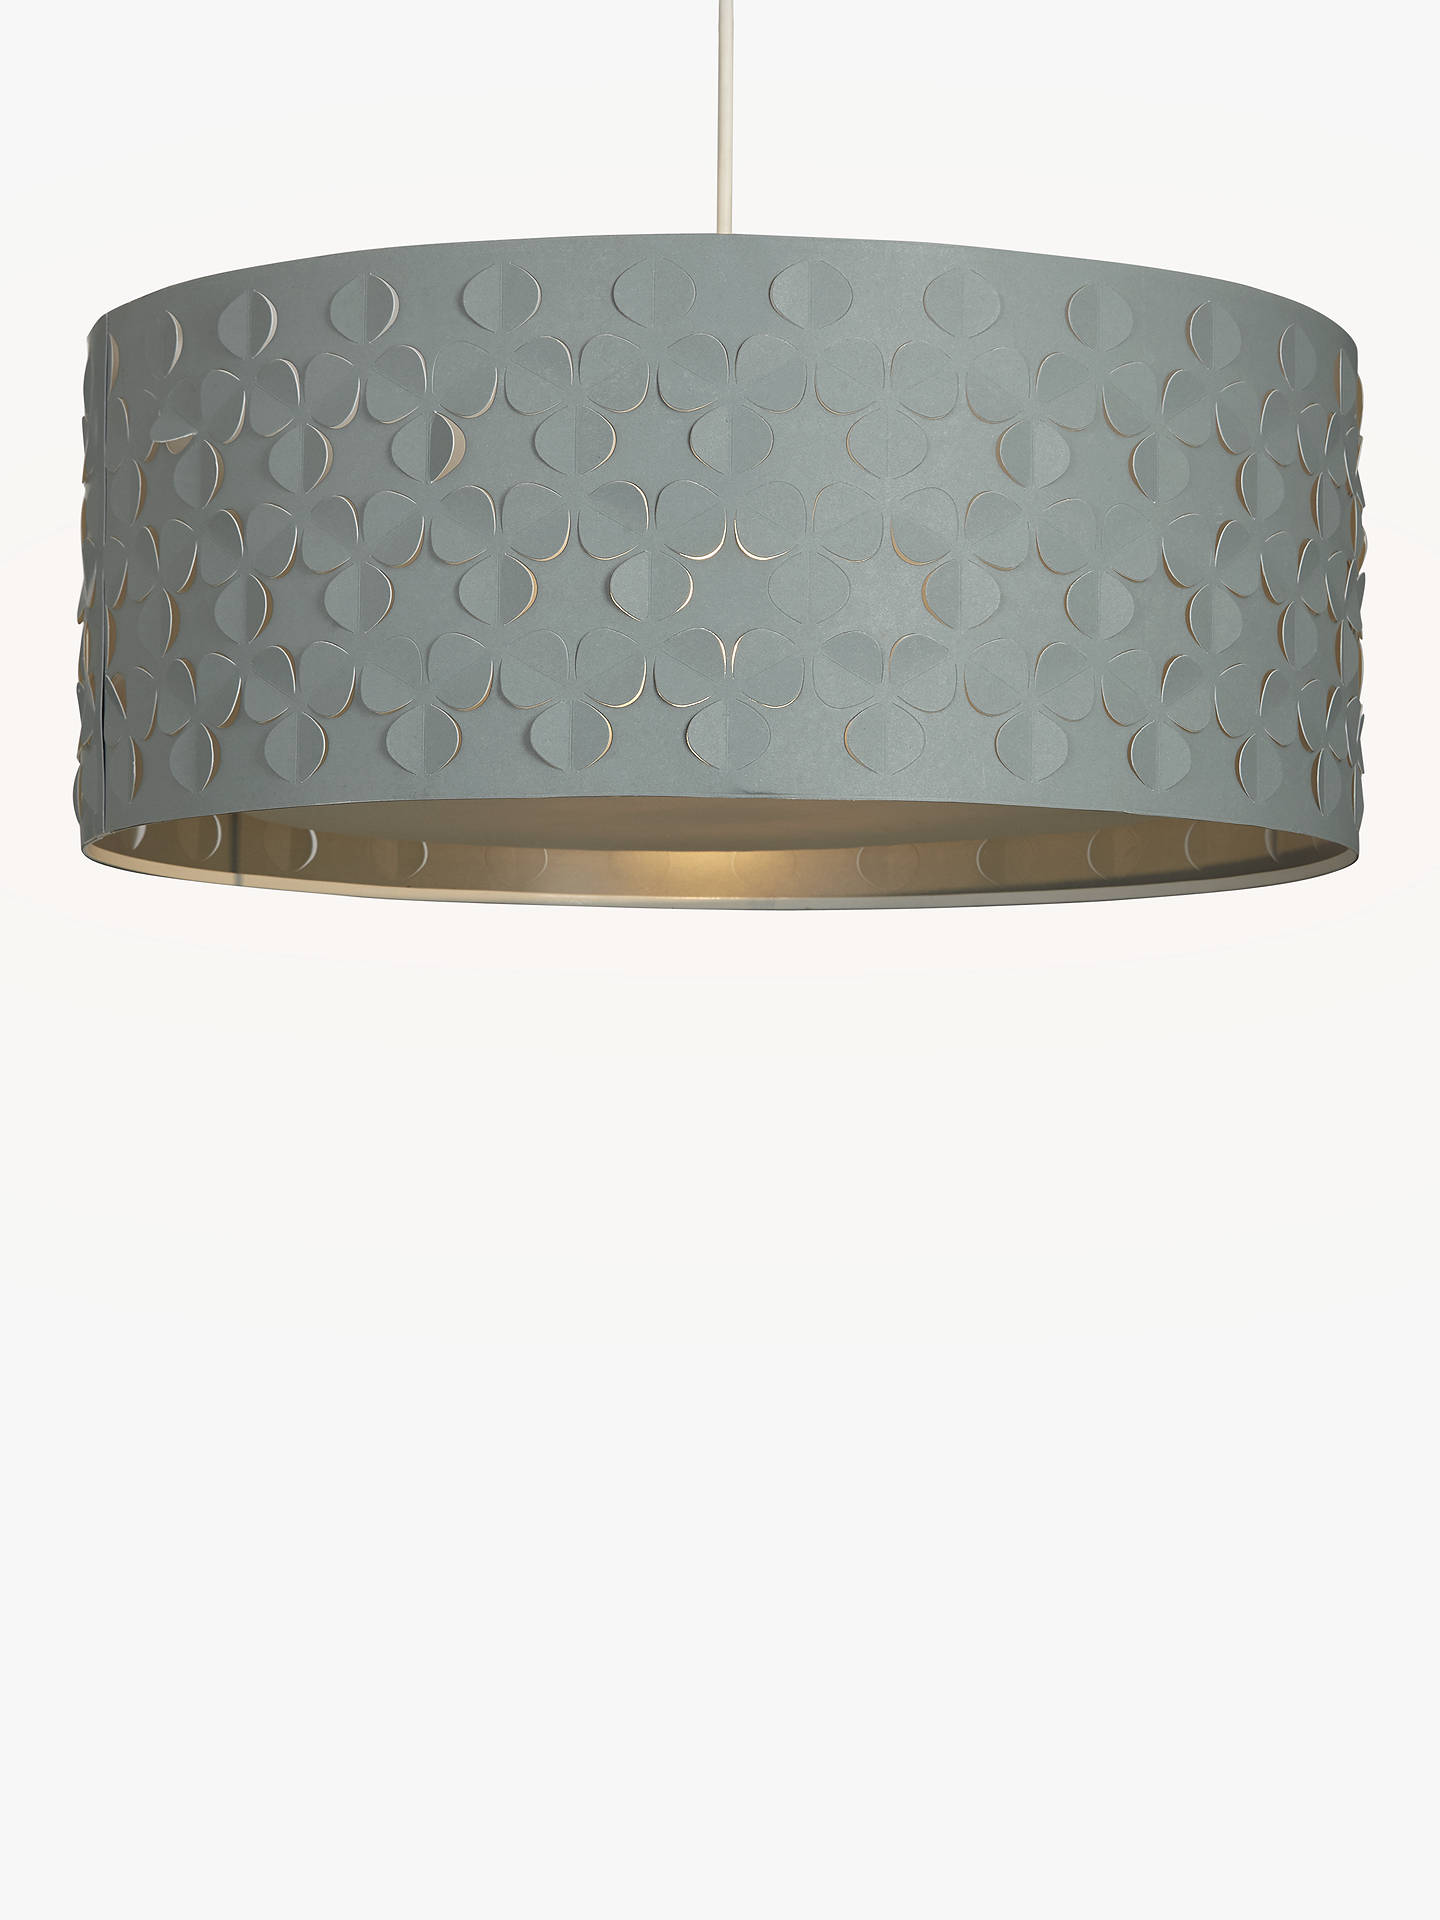 BuyJohn Lewis & Partners Clara Large Easy-to-Fit Diffuser Ceiling Shade, Grey Online at johnlewis.com